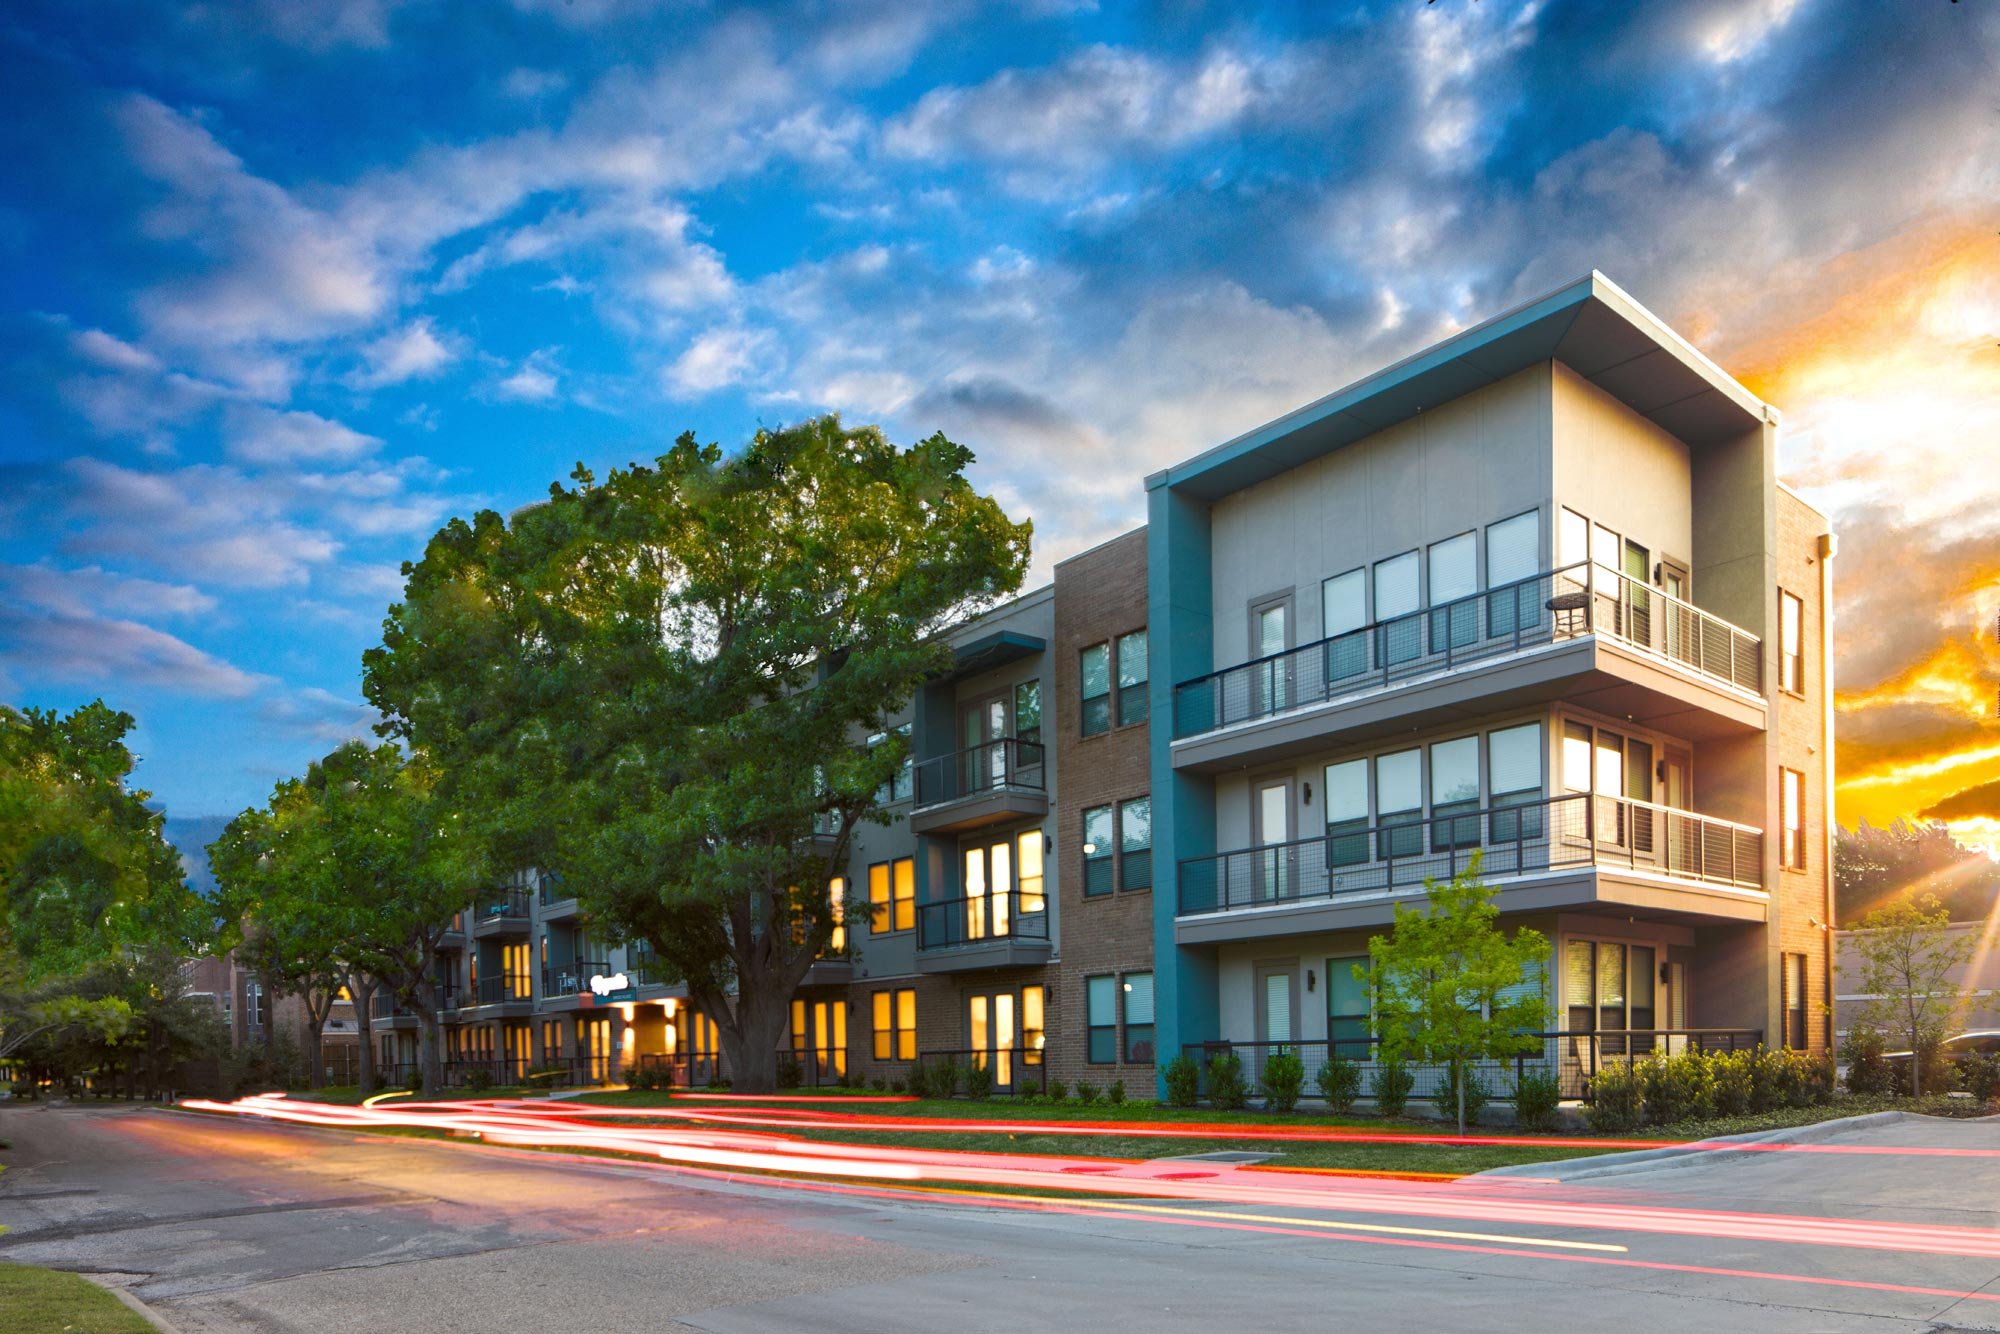 2 Bedroom Apartments In North Dallas Tx Residential Victory Park Hidden Ridge Apartments